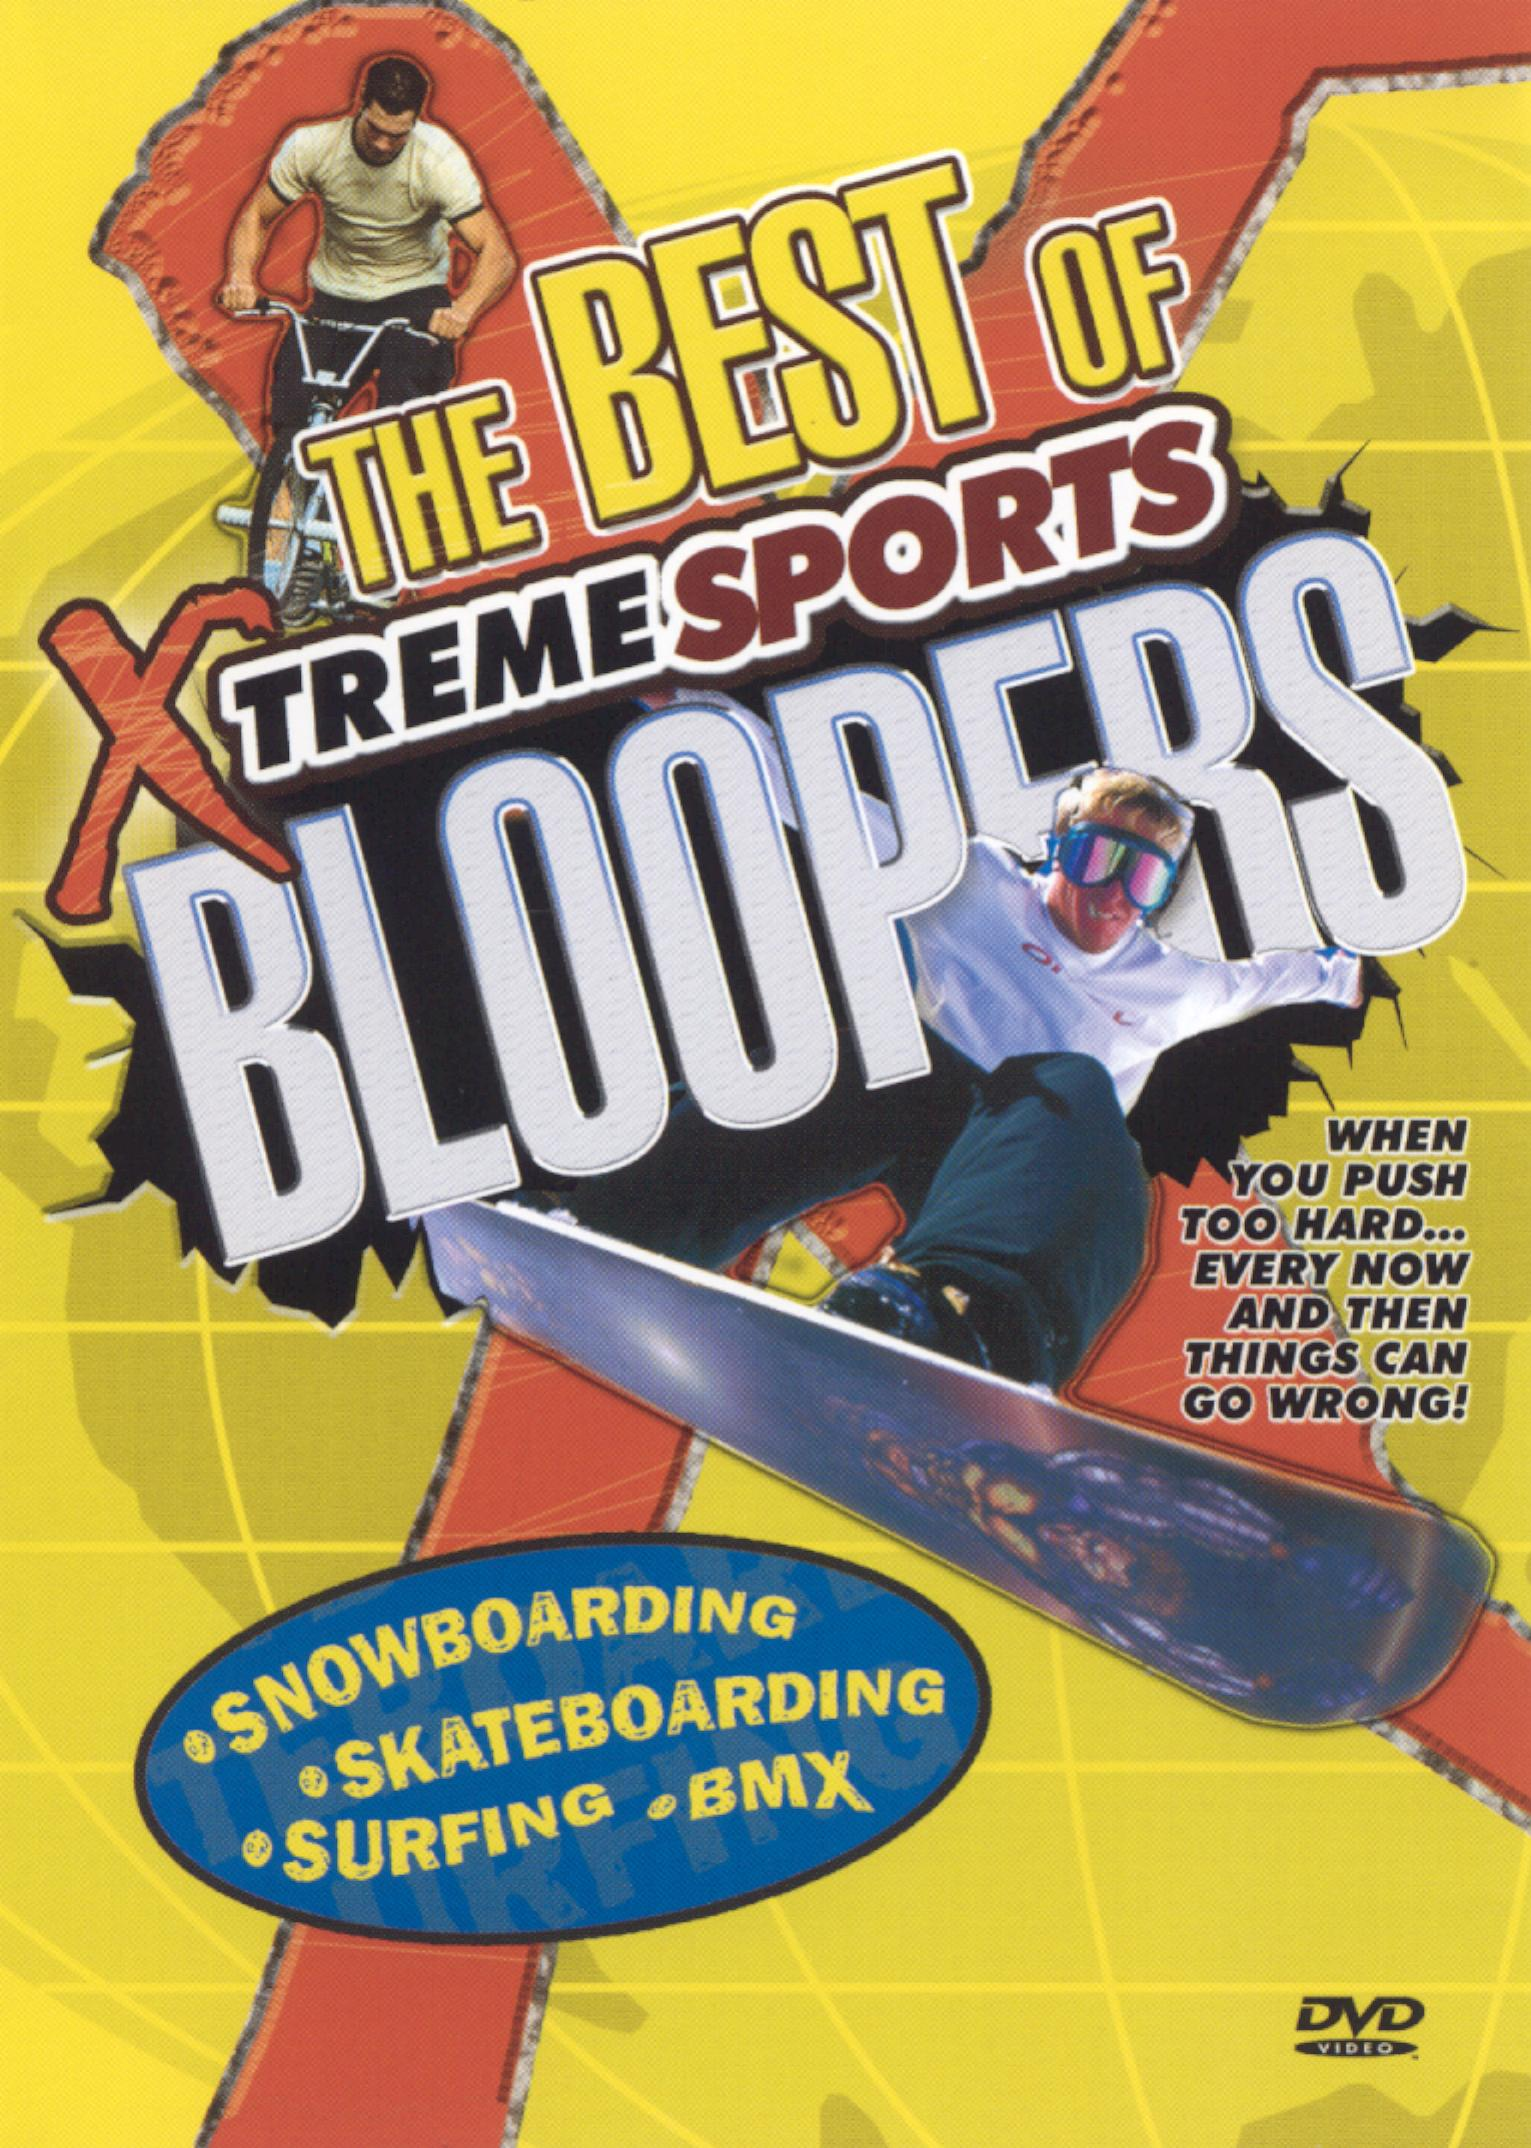 The Best of Xtreme Sports Bloopers